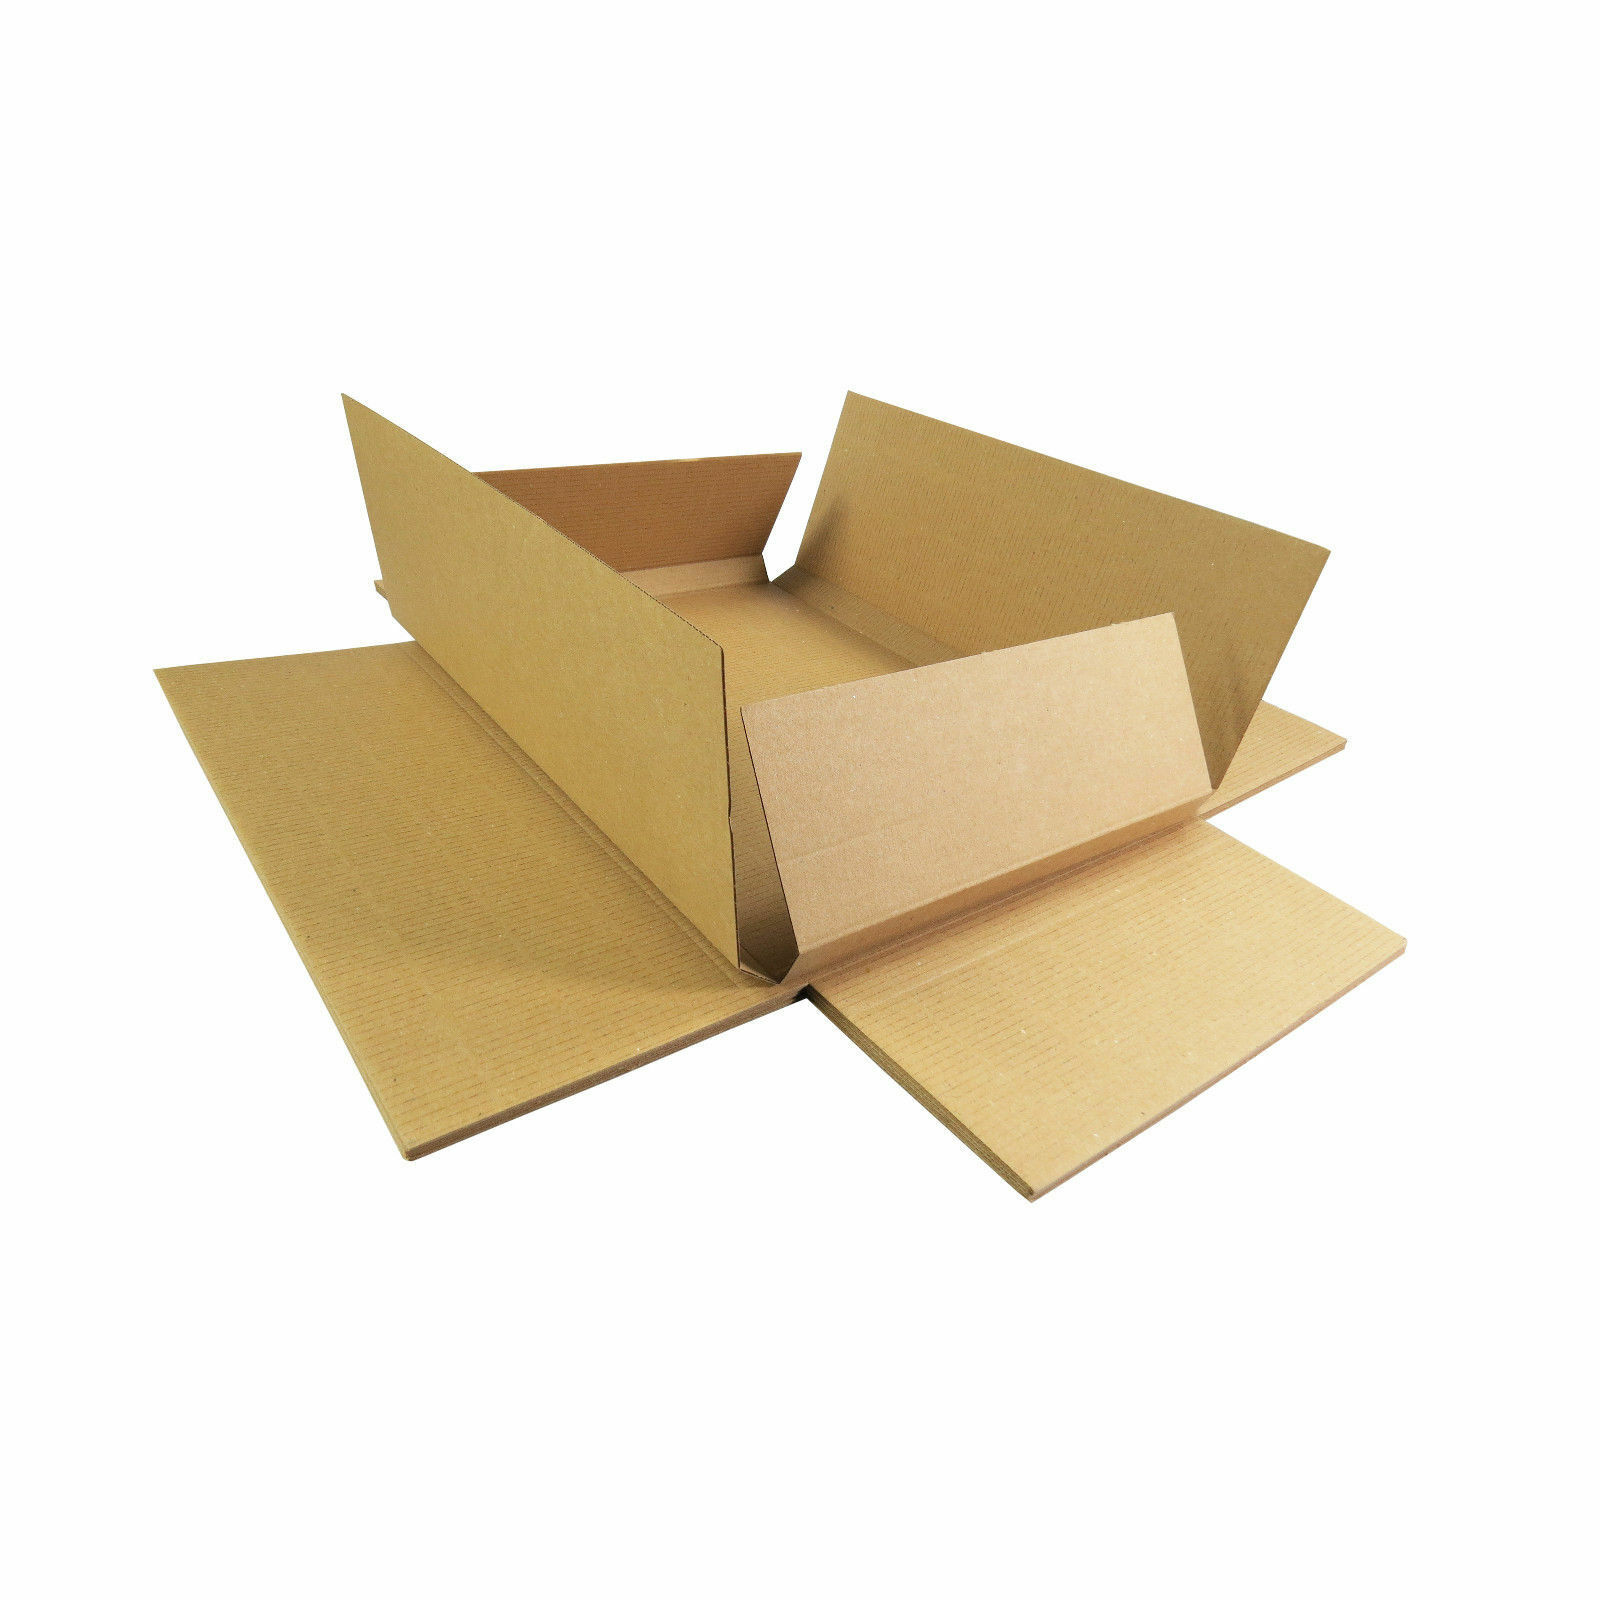 RM Large Letter Max Size Brown PiP Die Cut Cardboard Boxes C5 C6 C4